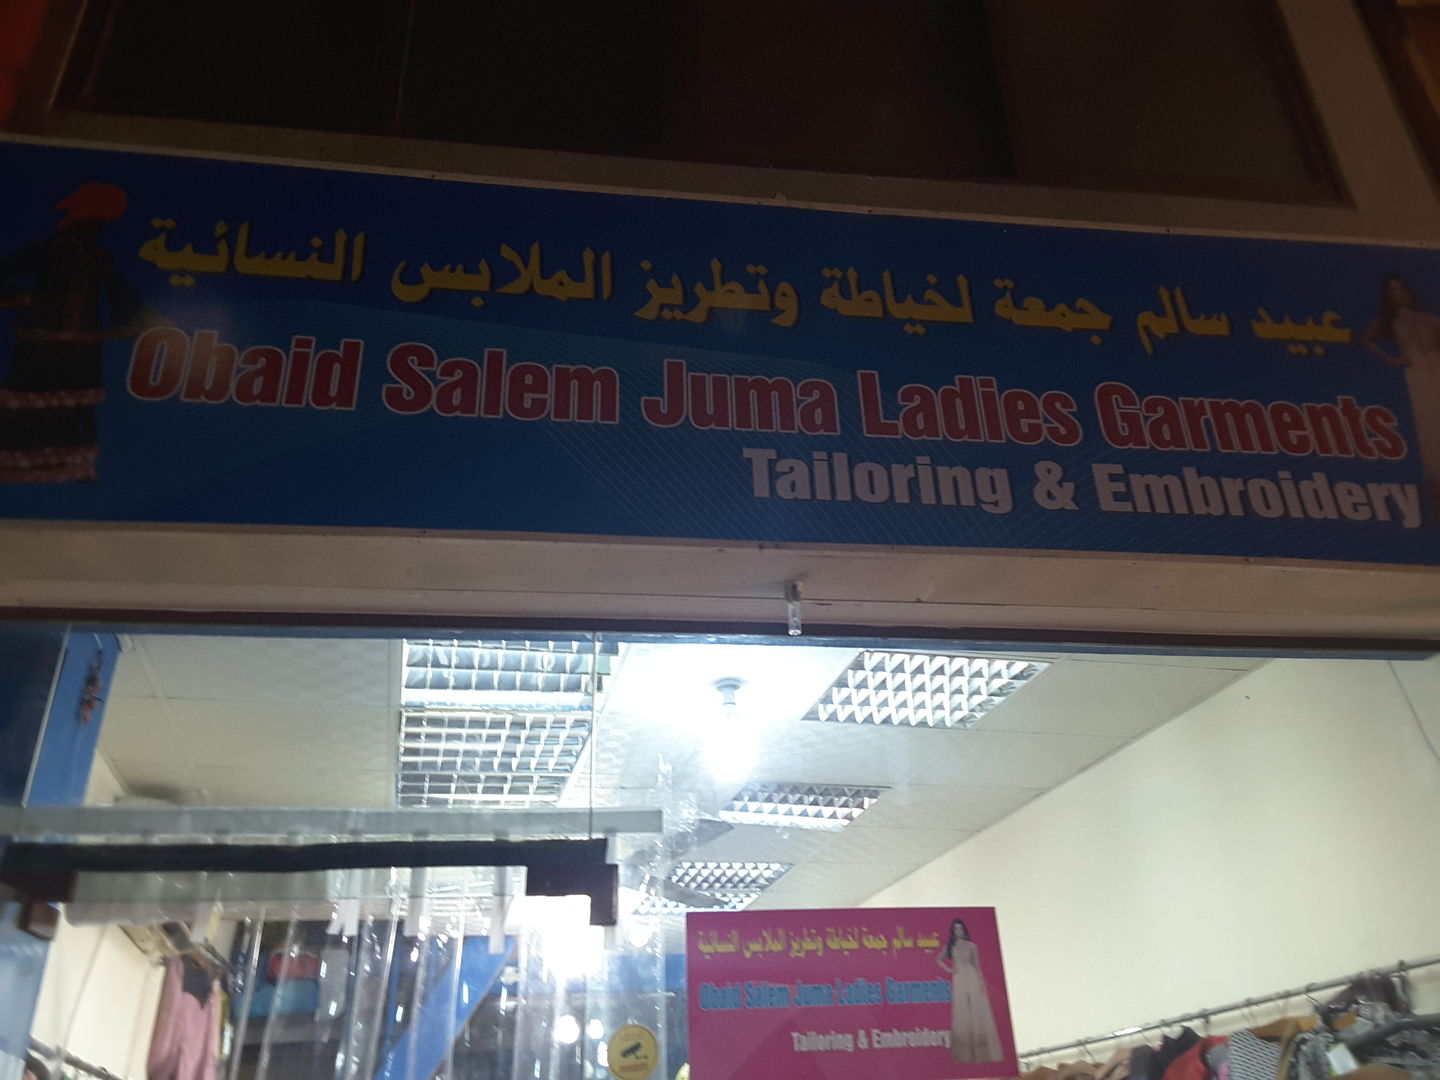 HiDubai-business-obaid-salem-juma-ladies-garment-tailioring-embroidery-home-tailoring-naif-dubai-2